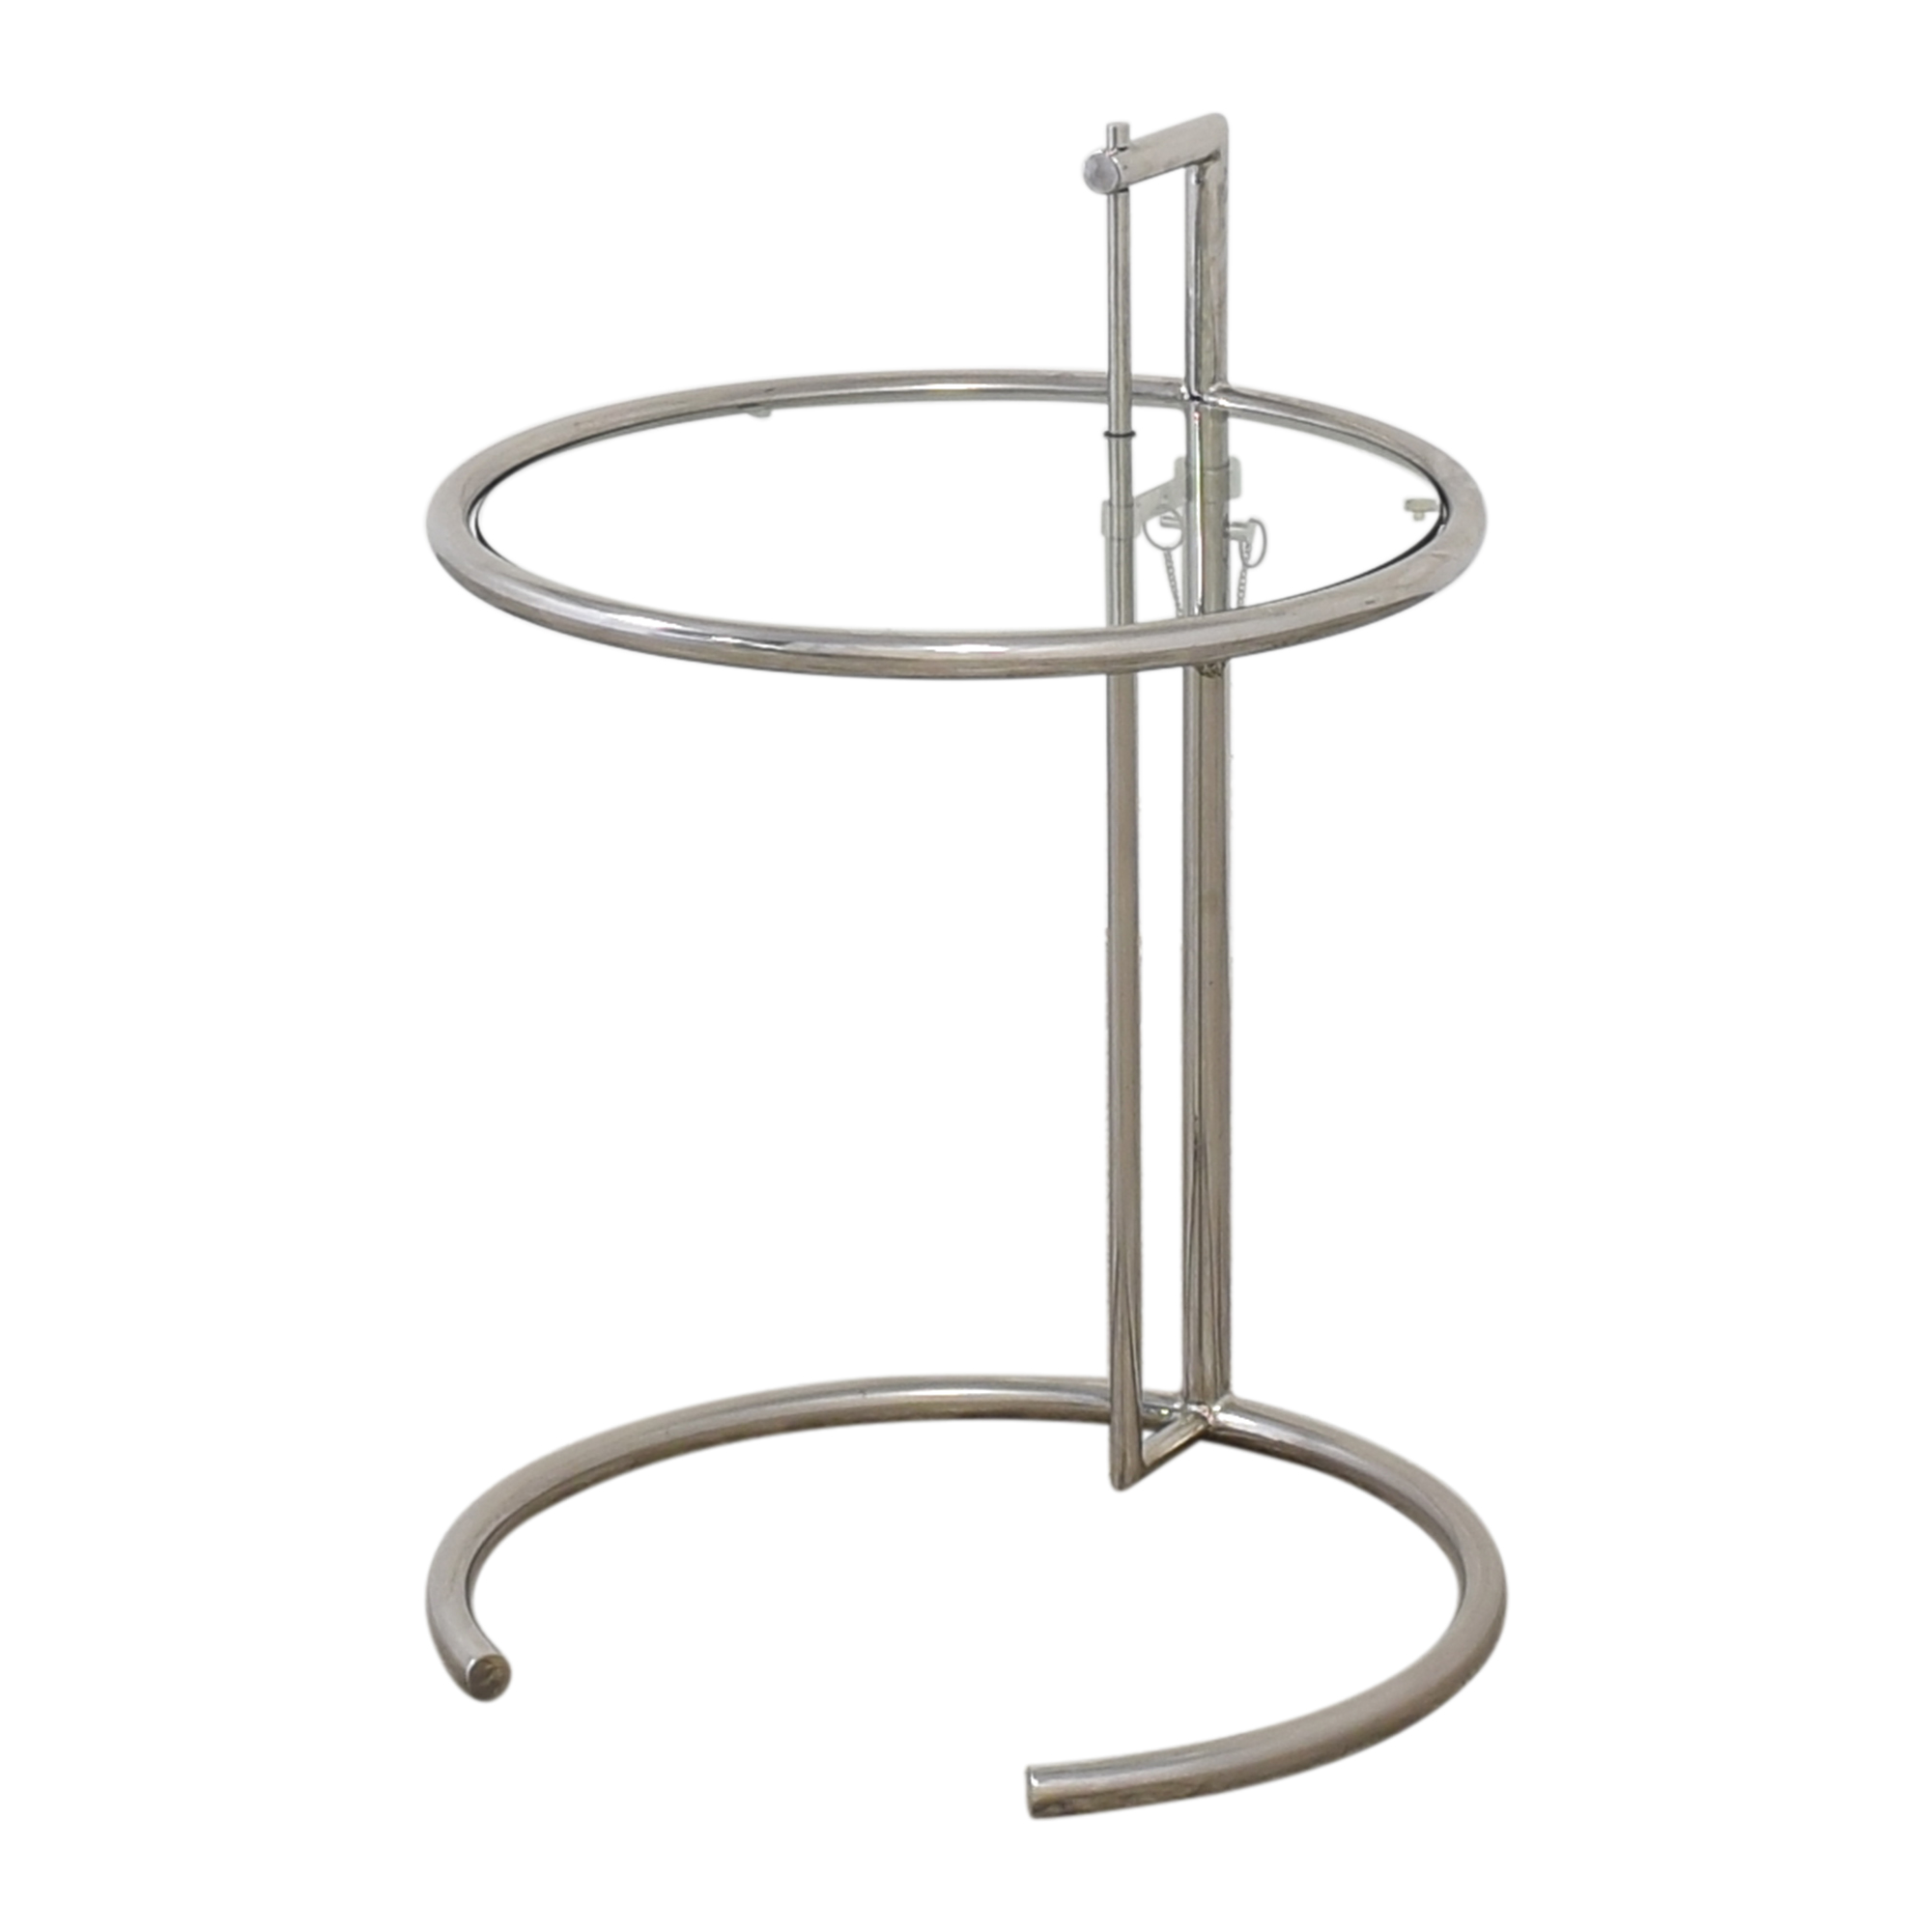 Vintage Eileen Gray-Style Chrome & Glass Side Table on sale